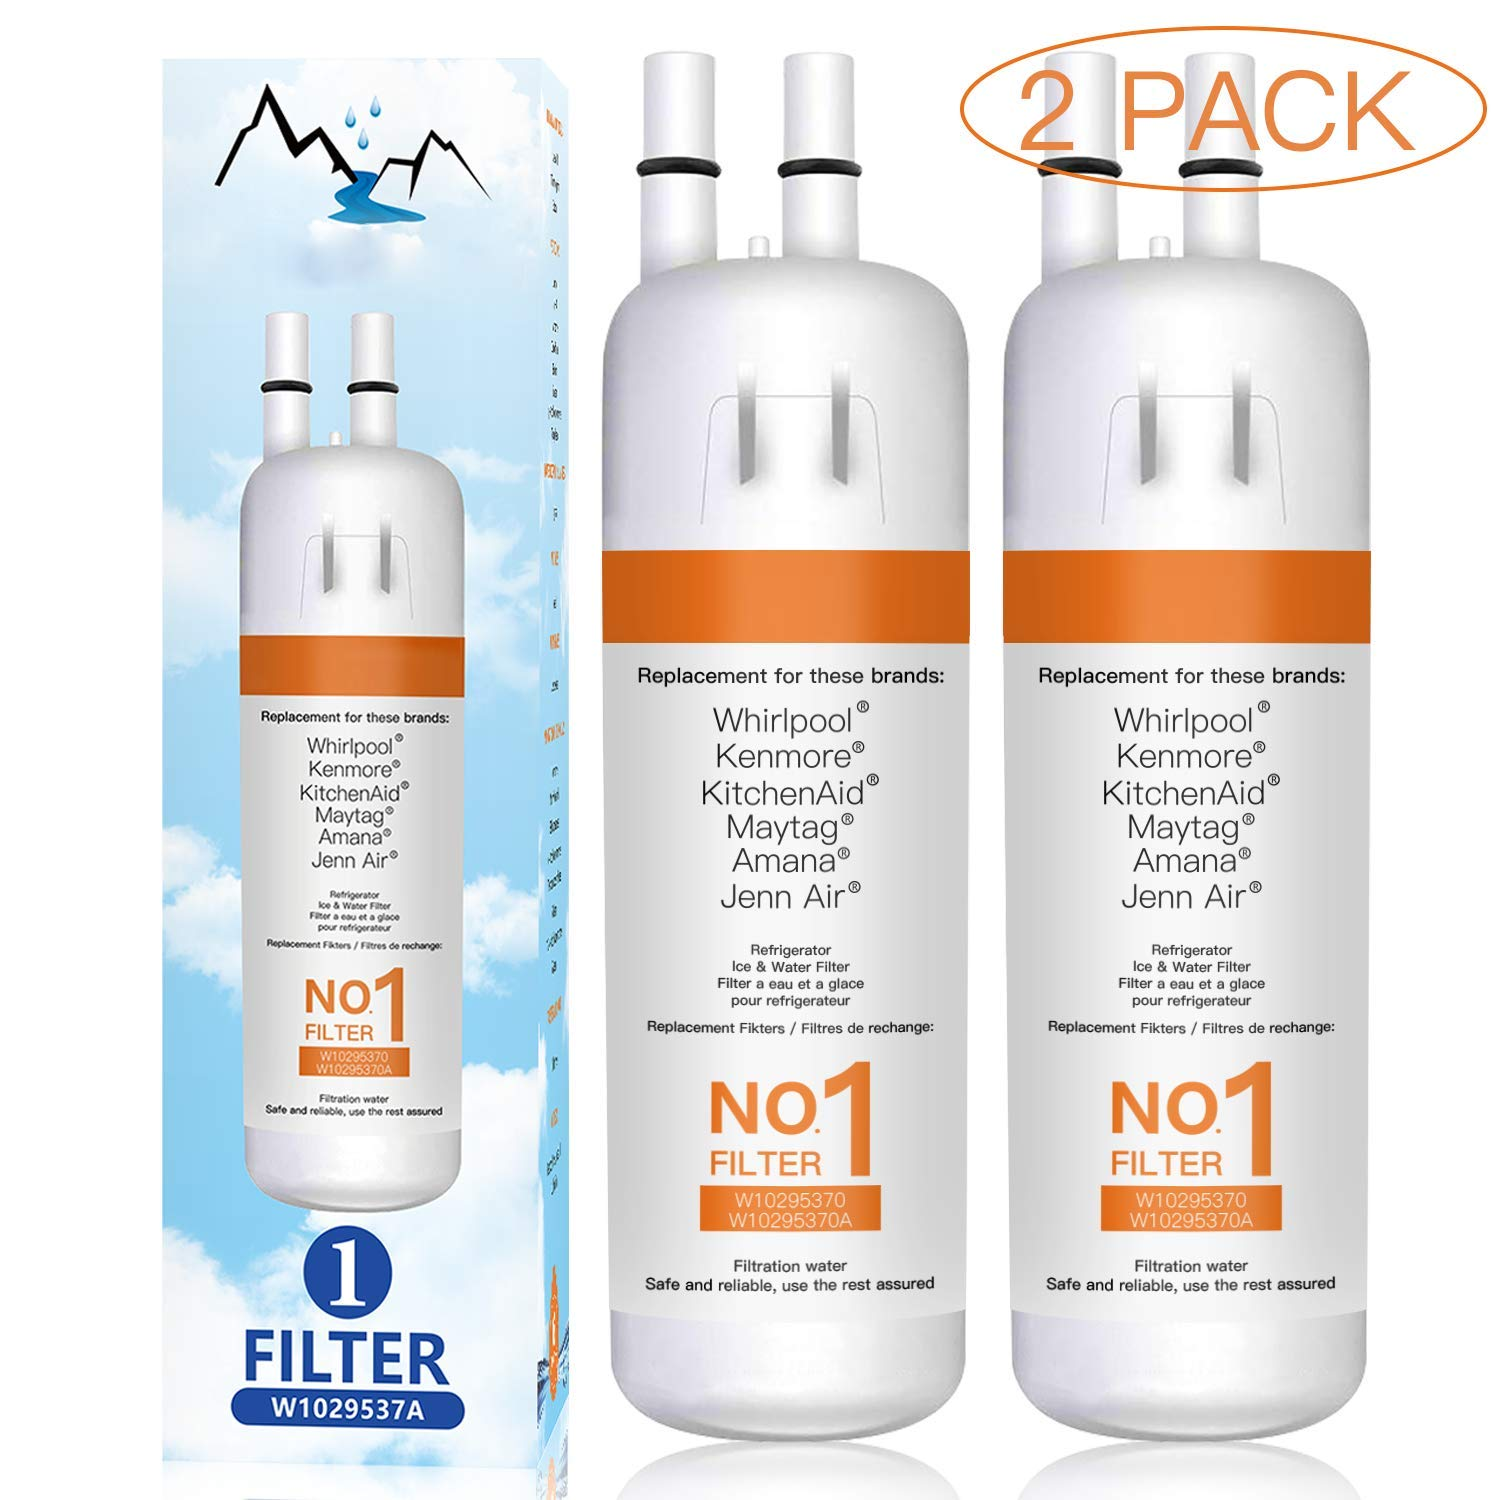 Busue 9081 Water Filter,Refrigerator Replacement, Compatible for Water Filter 1 Kenmore 9081 9930 WF1 (2 Pack)